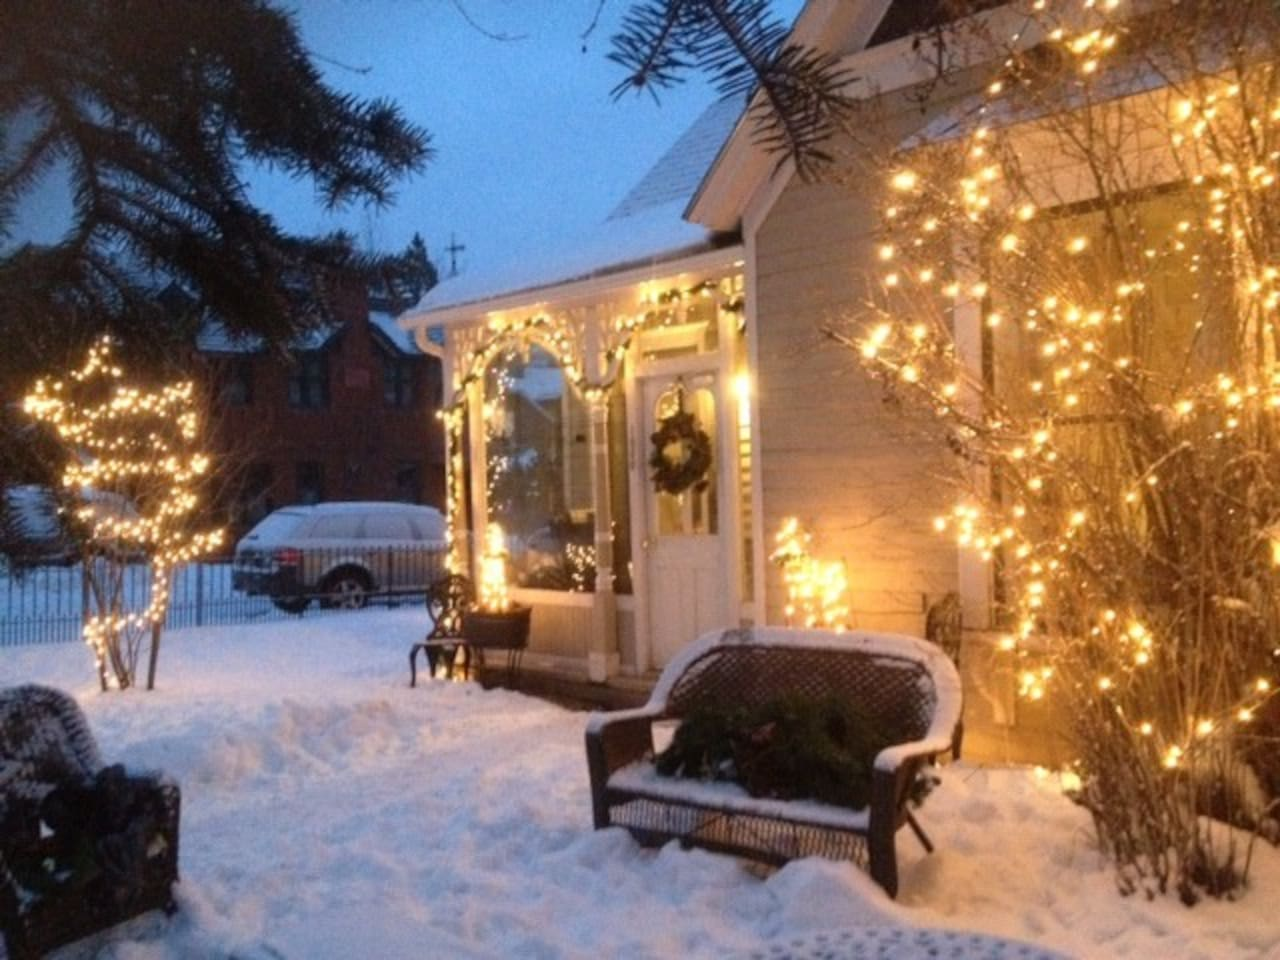 A peek of the charming front enterance